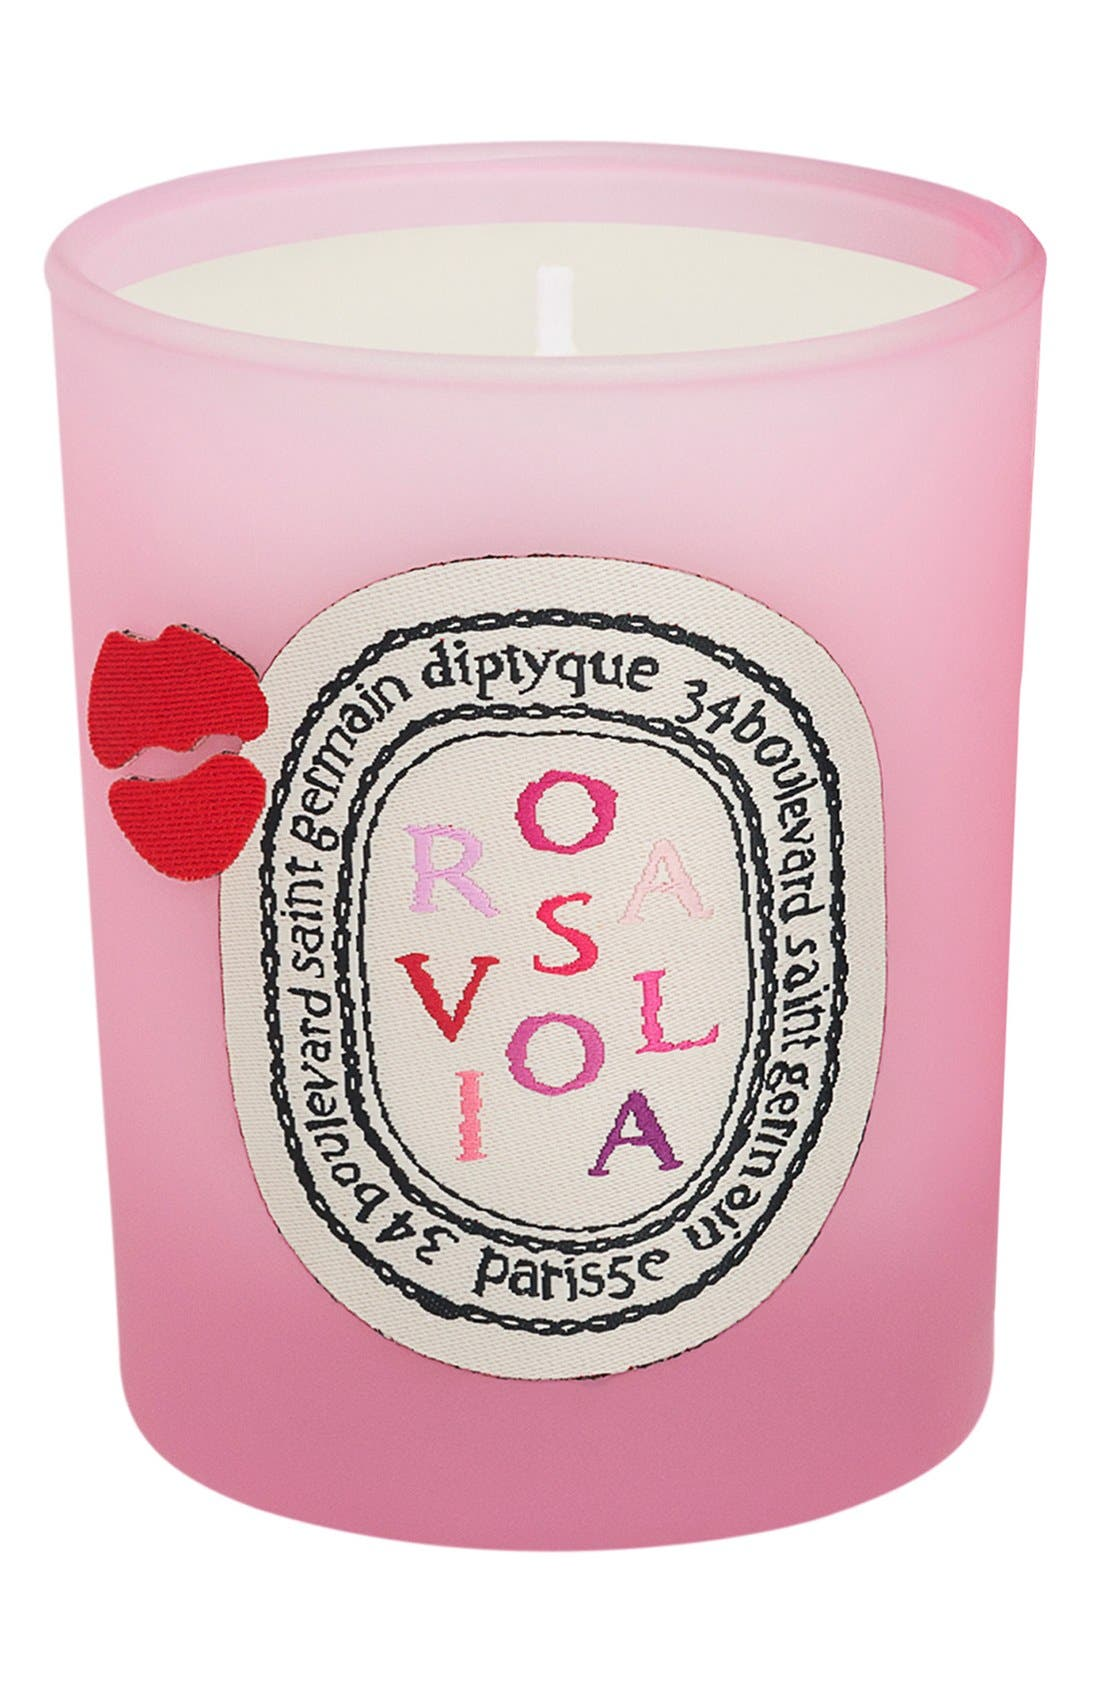 Alternate Image 2  - diptyque 'Rosaviola' Scented Candle (Limited Edition)